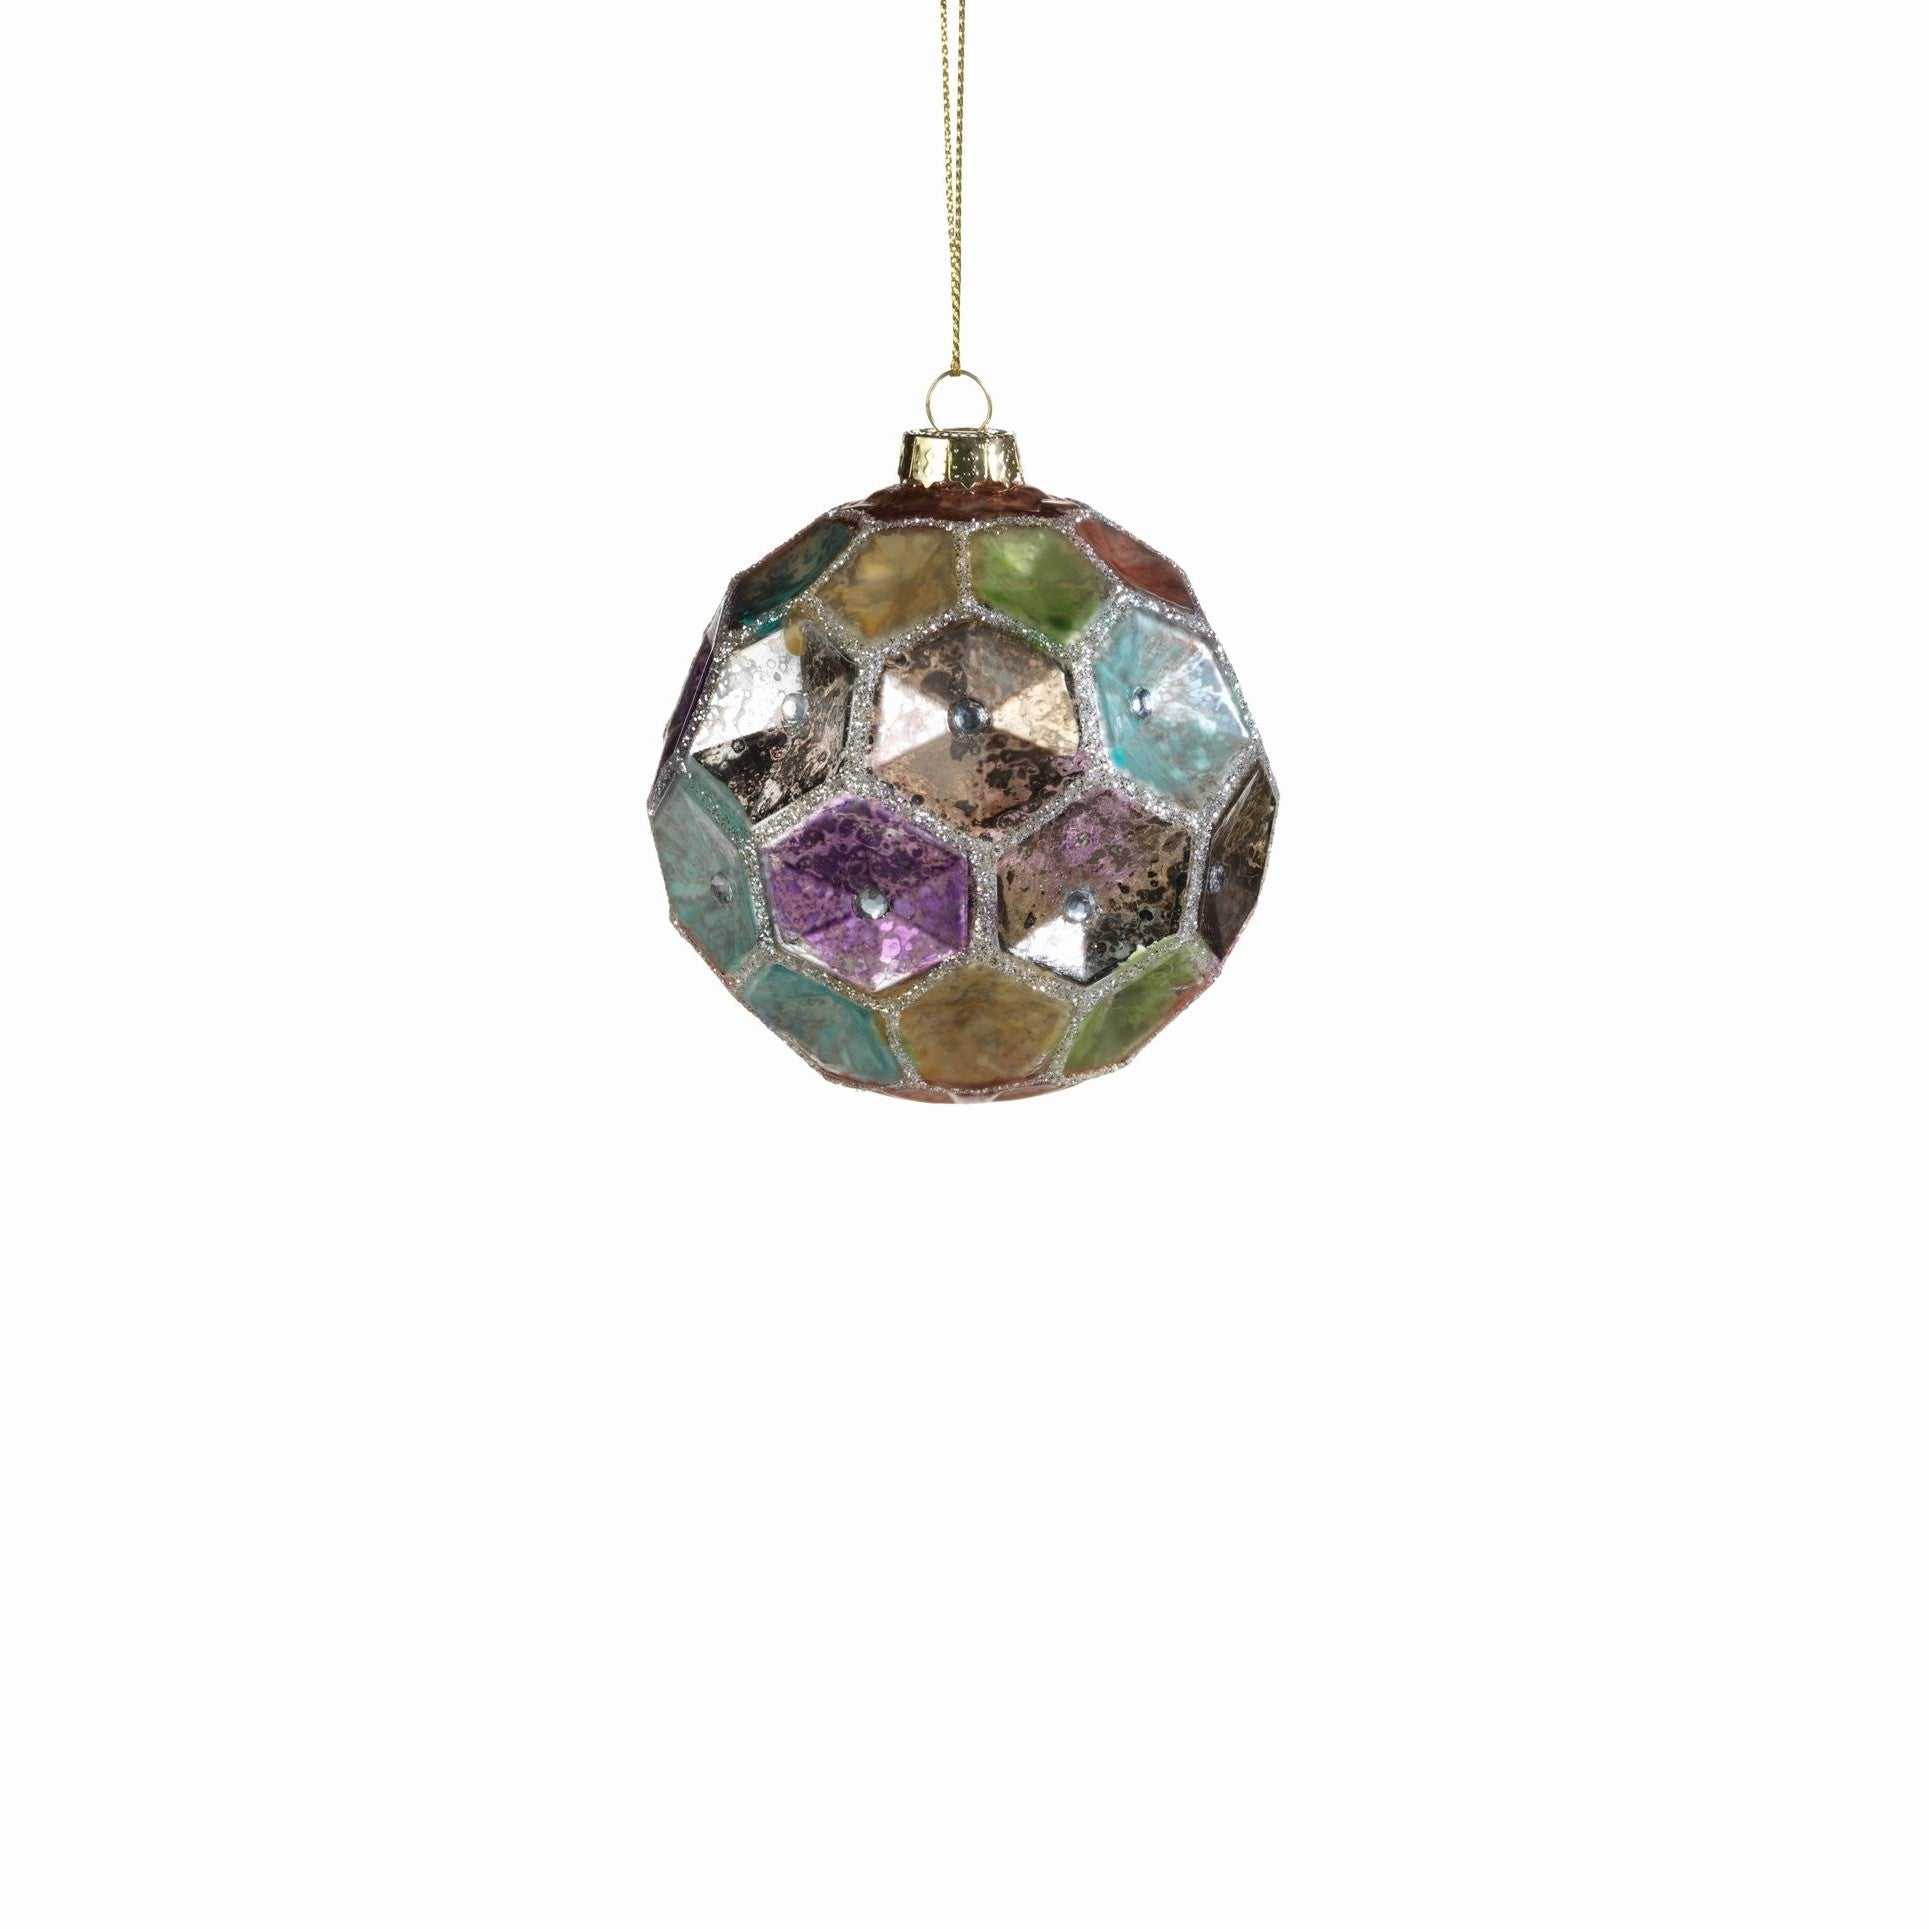 Dimpled Colored Ball Ornament - CARLYLE AVENUE